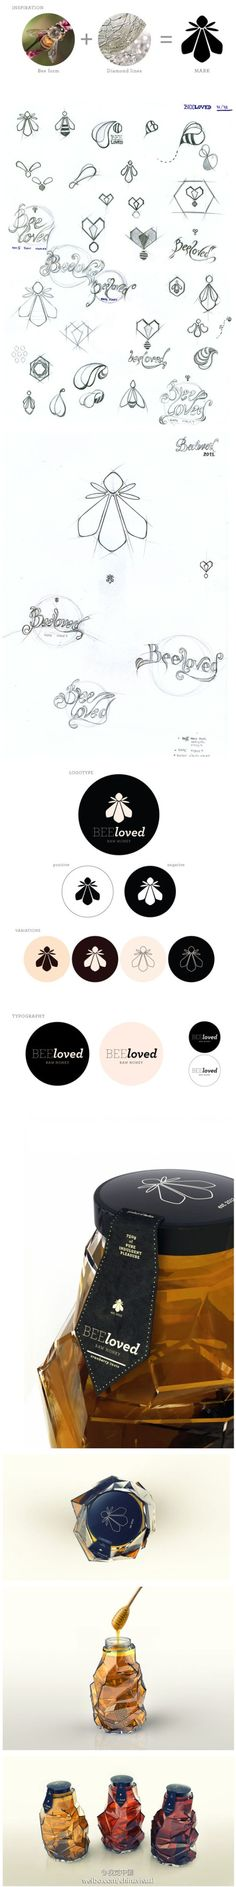 Process/Development of Beeloved / honey / logo / identity / branding / sketches / design / packaging / sketch - Graphic Templates Search Engine 2 Logo, Logo Branding, Logo Bee, Coperate Design, Cover Design, Inspiration Logo Design, Logo Process, Branding Process, Design Process